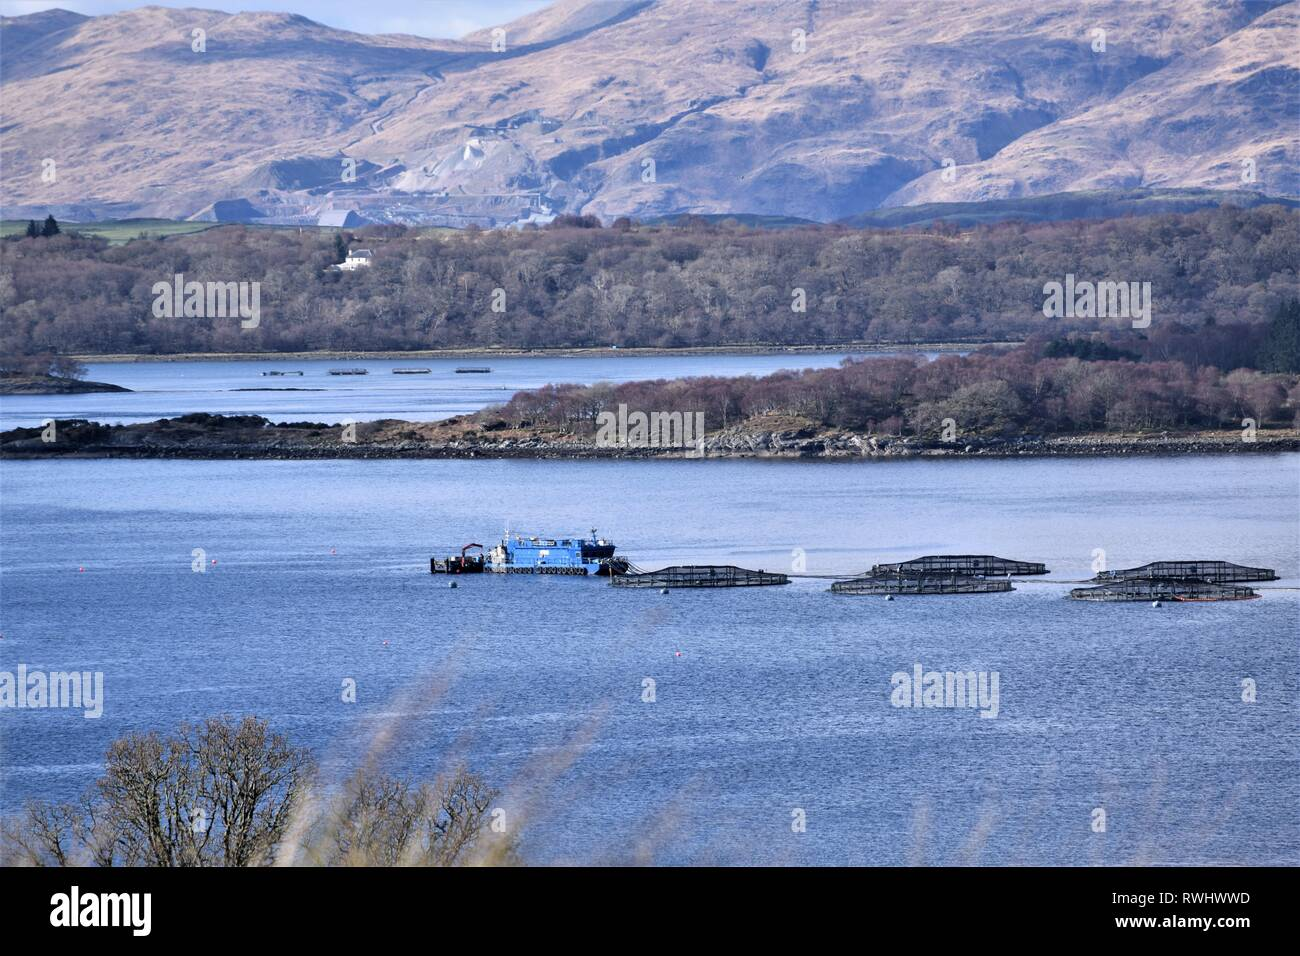 Scottish Sea Farms boat and salmon cages at South Shian with Glensanda Superquarry visible in the background. - Stock Image